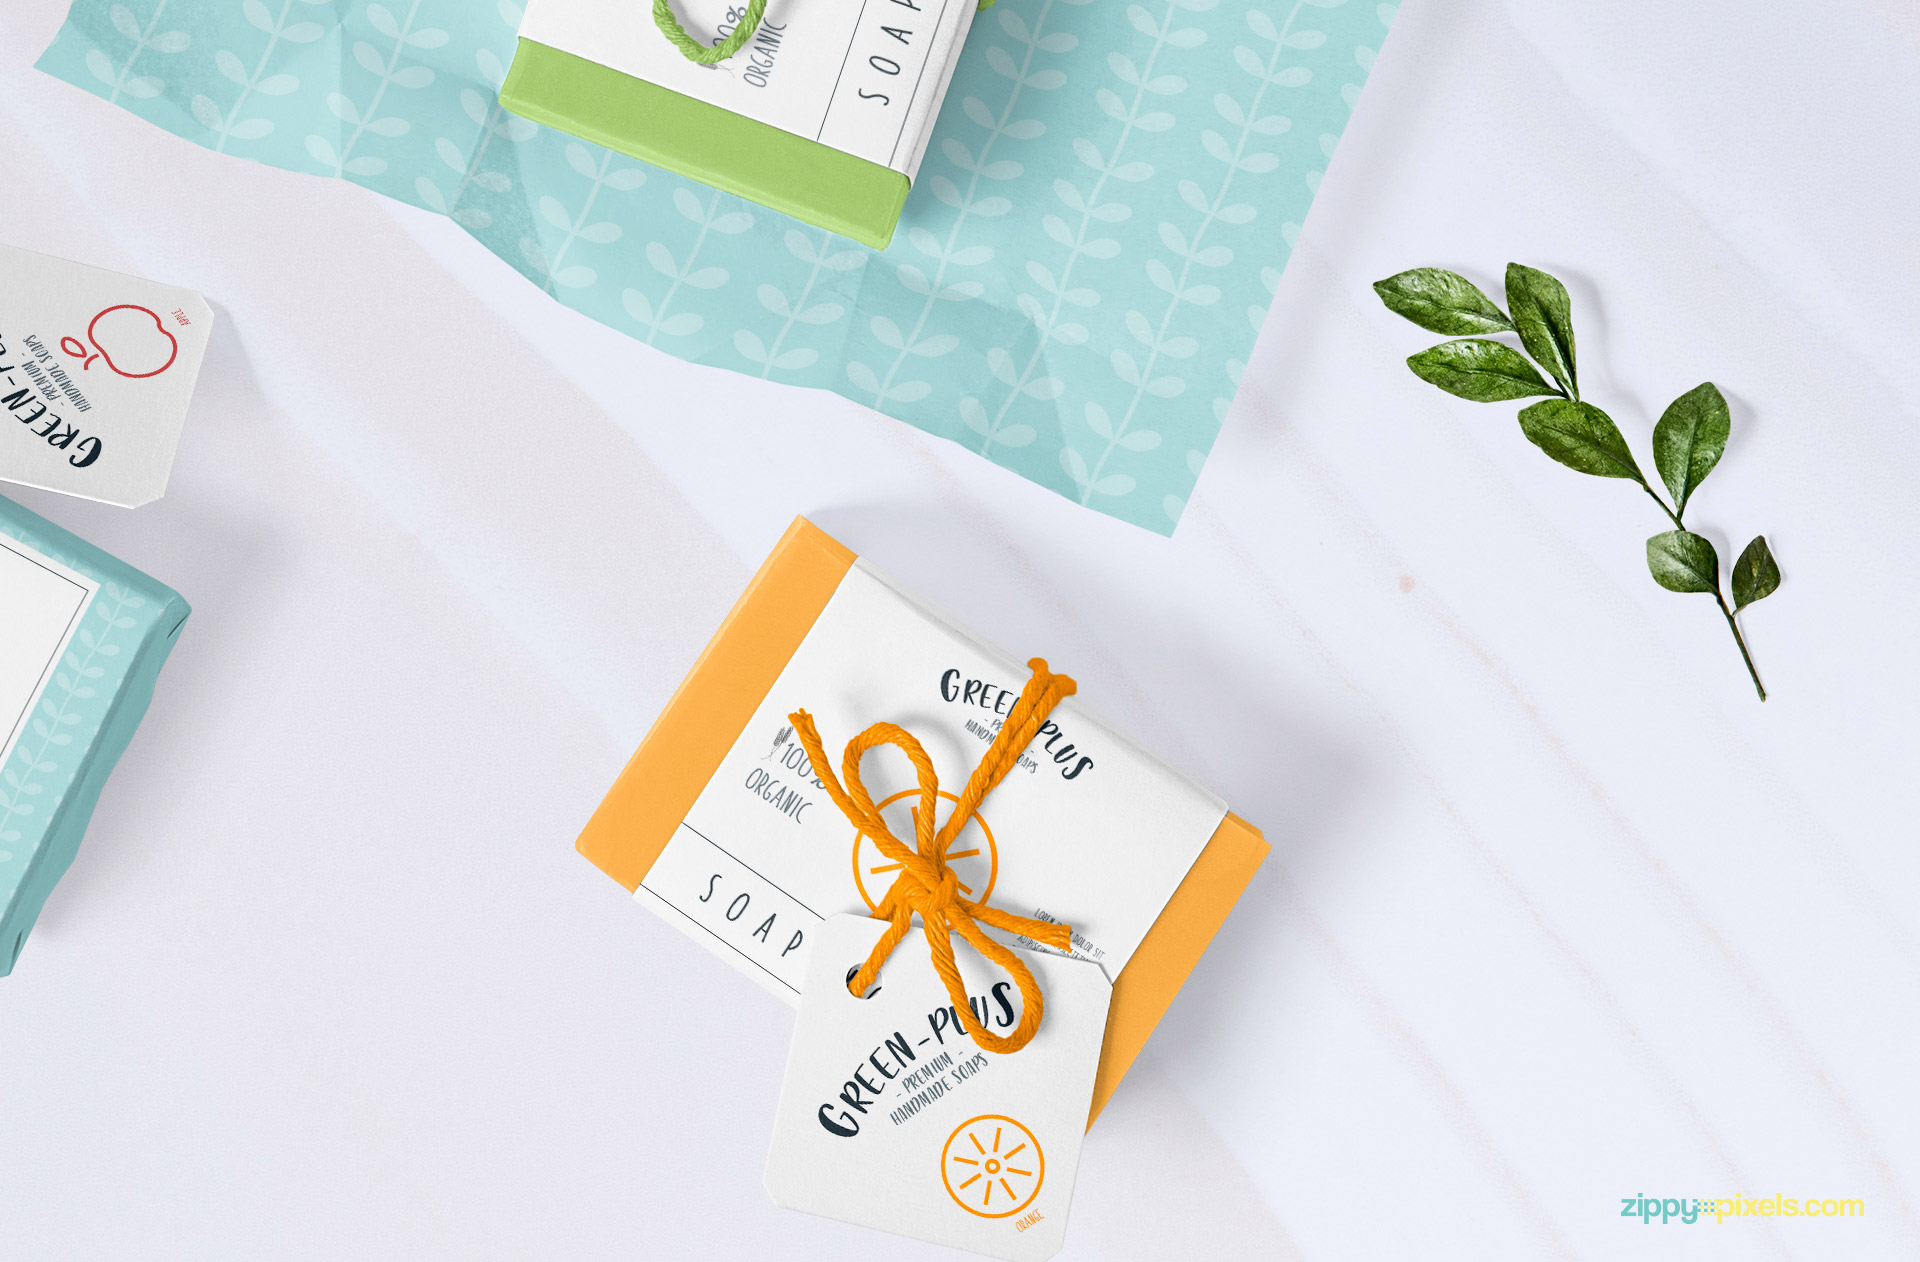 Editable packaging sleeve of the soap.